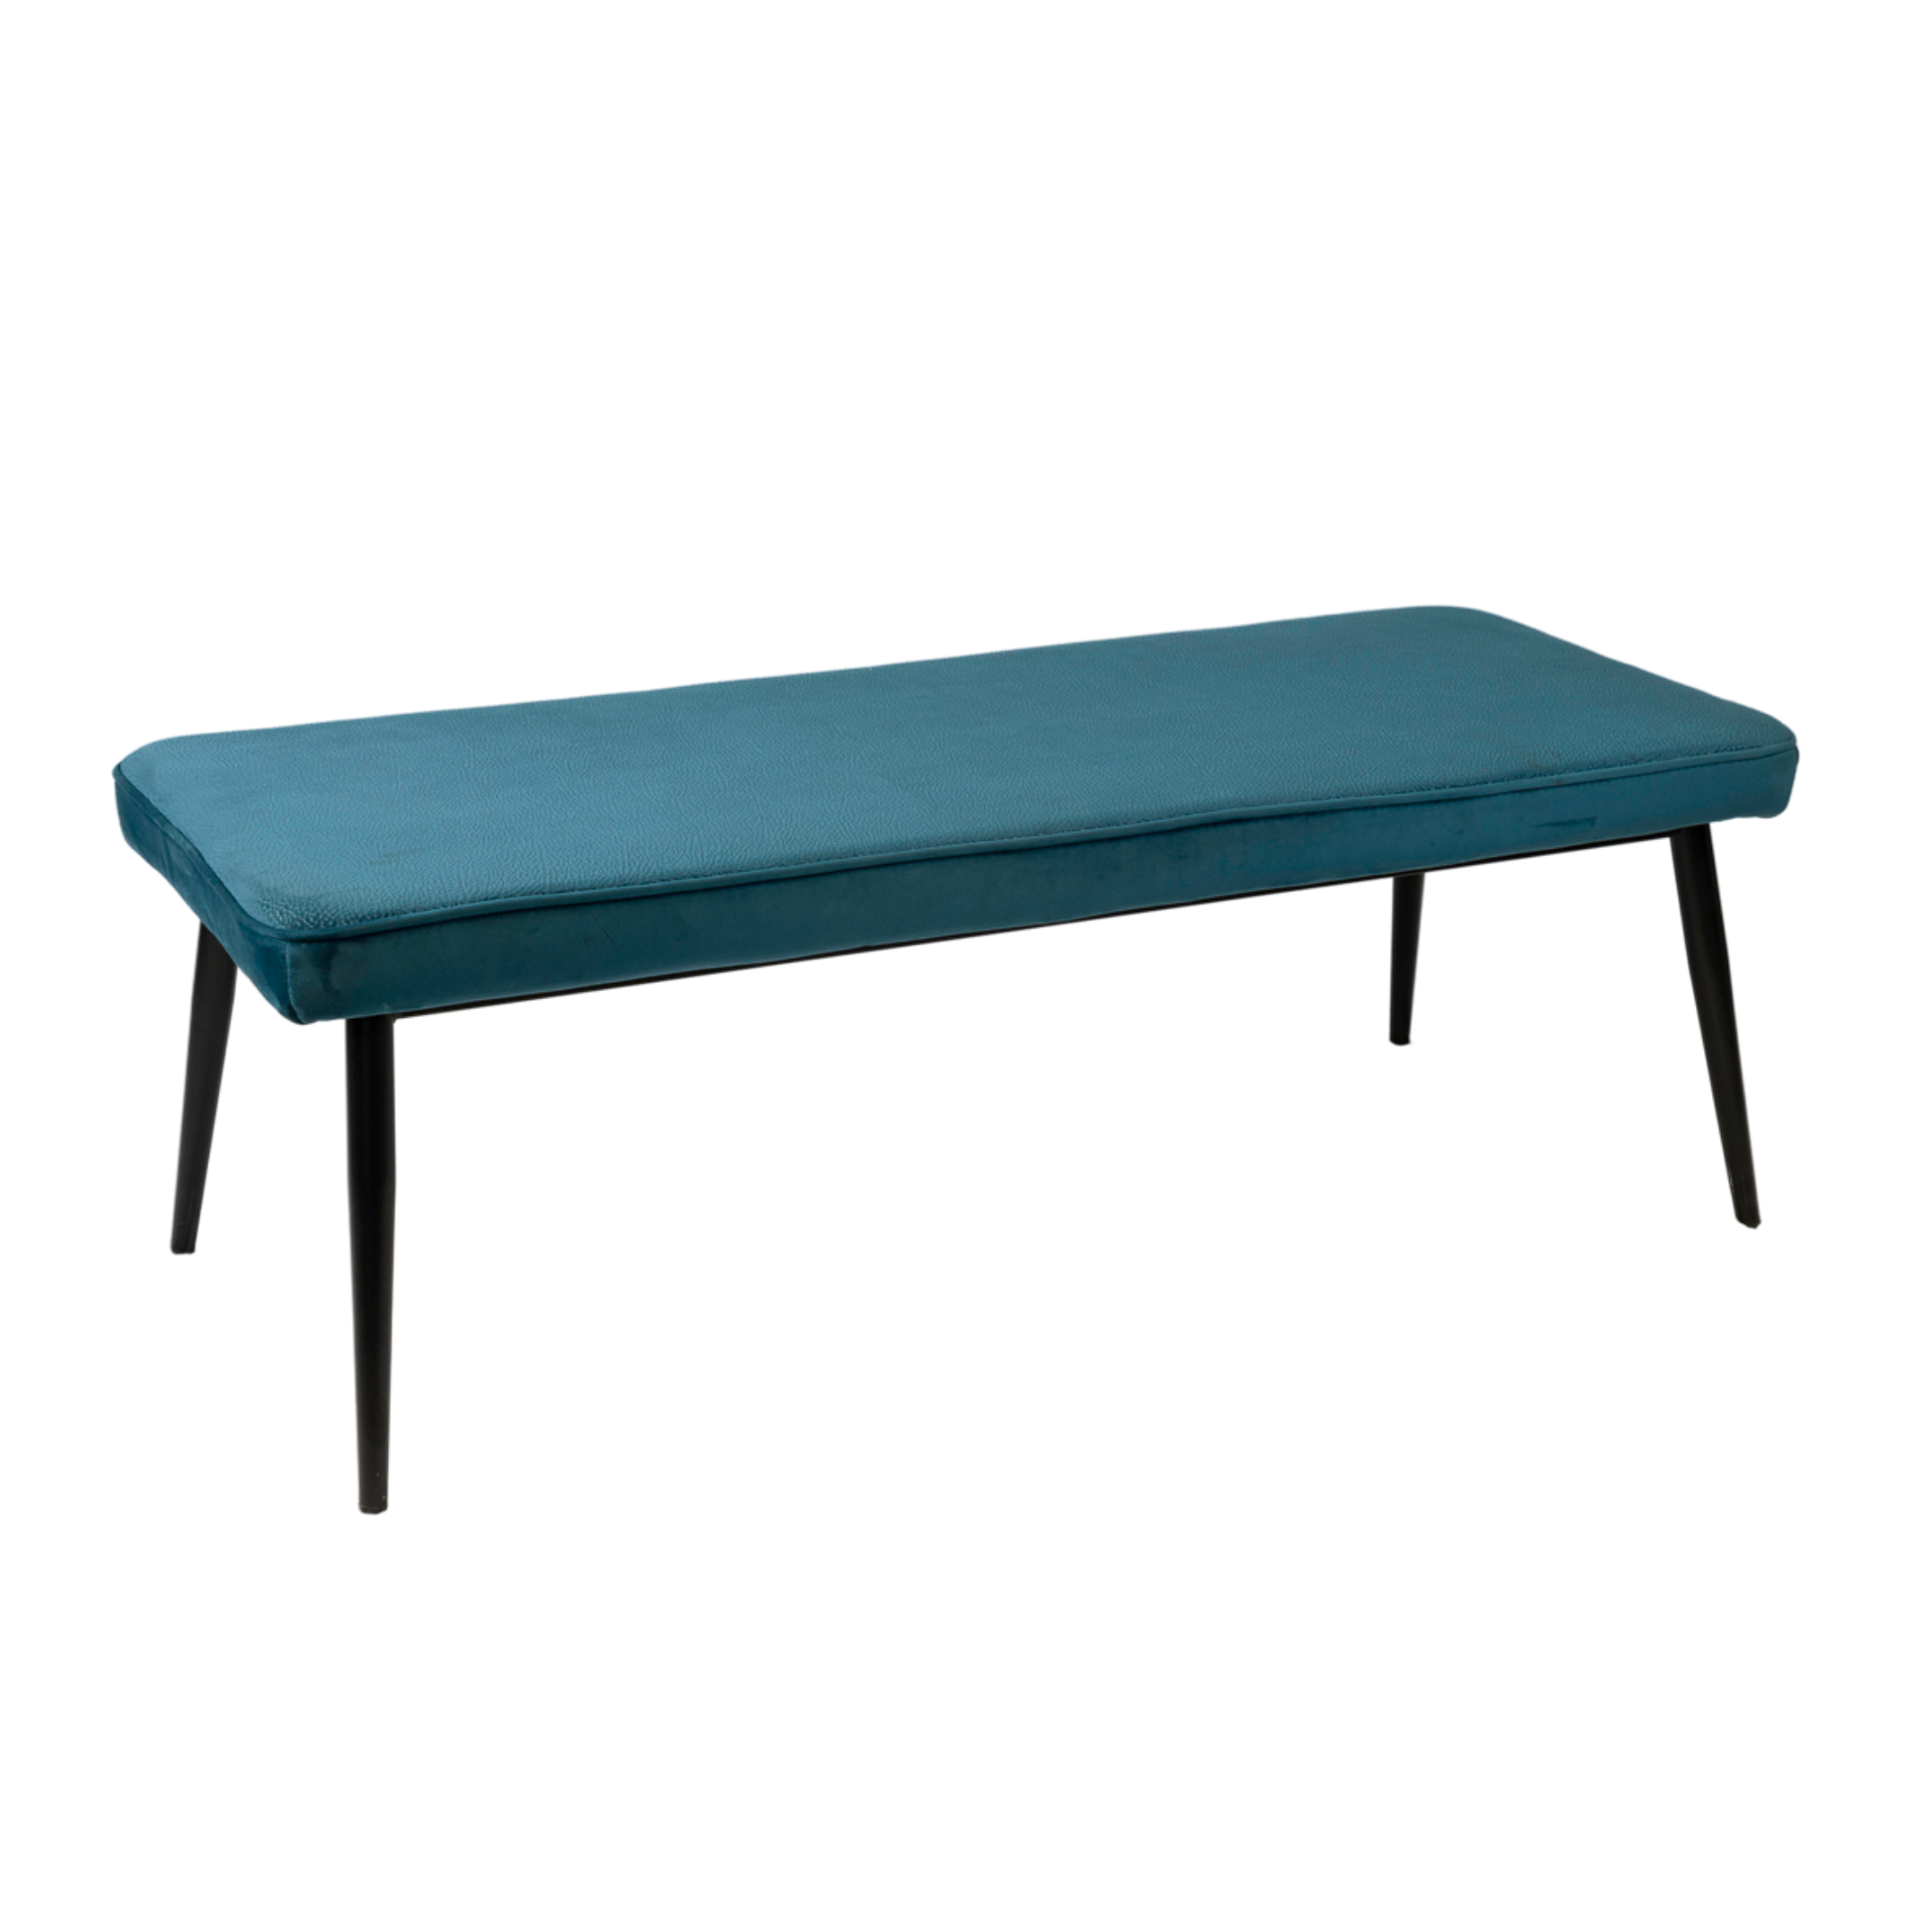 teal-bench-ottoman-hire